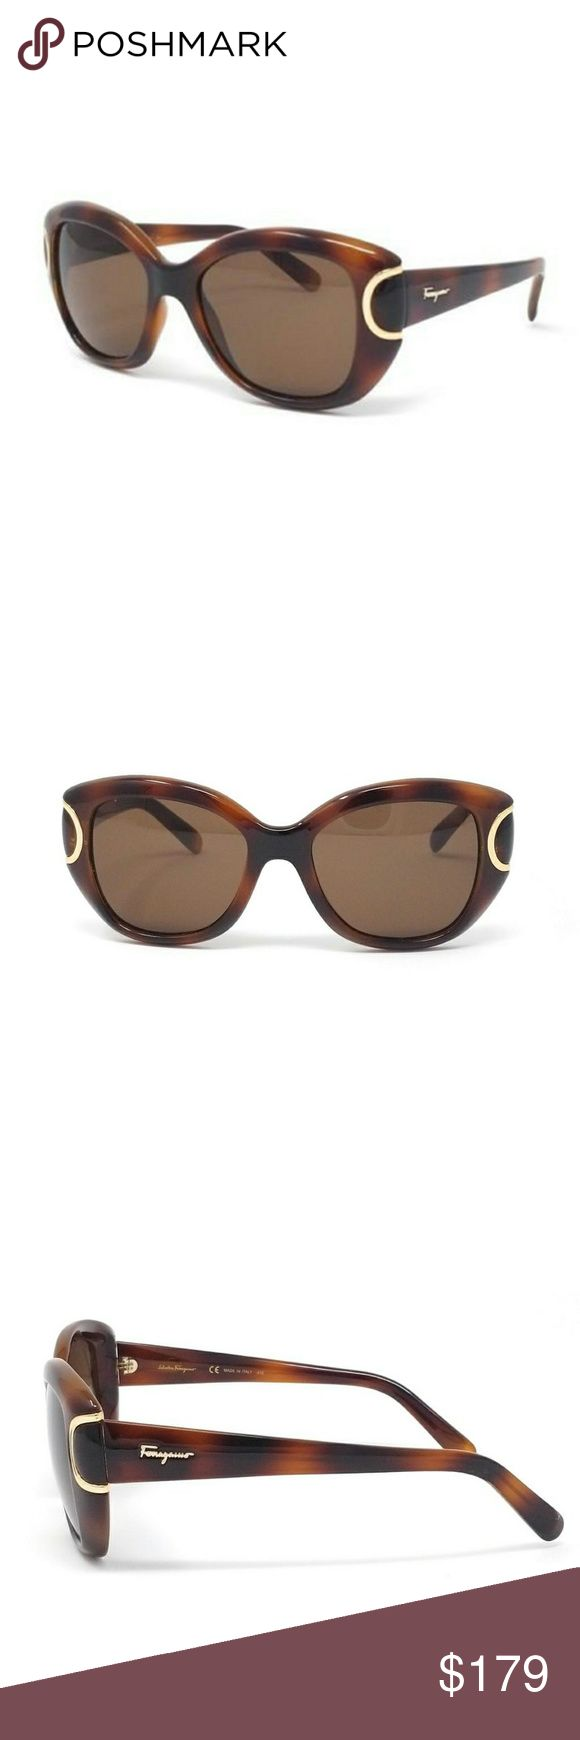 Salvatore Ferragamo Havana Brown sunglasses New Authentic Salvatore Ferragamo sunglasses. Frames are Havana Brown  with Brown Lenses. The glasses are beautiful and compliments any outfit. Comes in original package.New Authentic Salvatore Ferragamo sunglasses. Frames are red with gold. Lenses are Brown gradient. The glasses are beautiful and compliments any outfit. Comes in original package. Salvatore Ferragamo Accessories Glasses